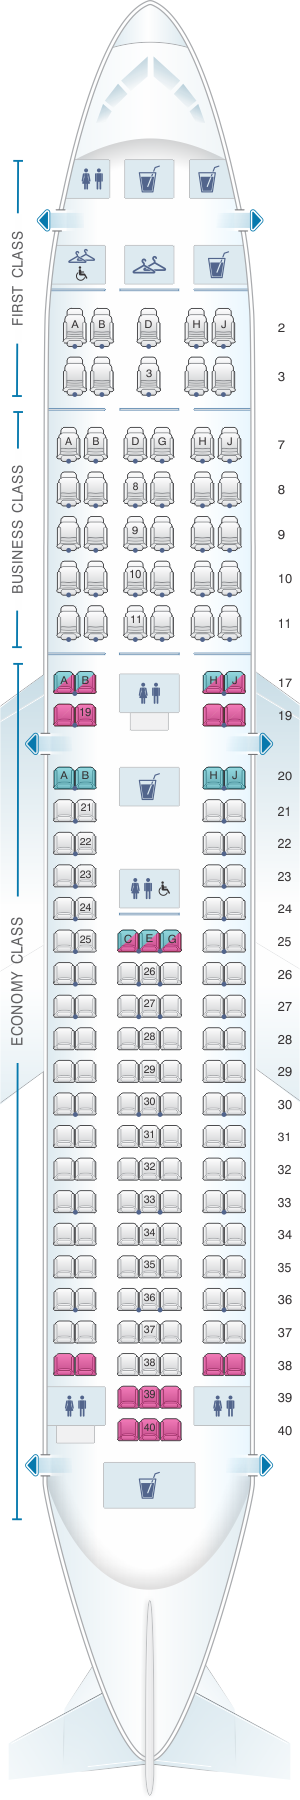 Seat map for American Airlines Boeing B767 200